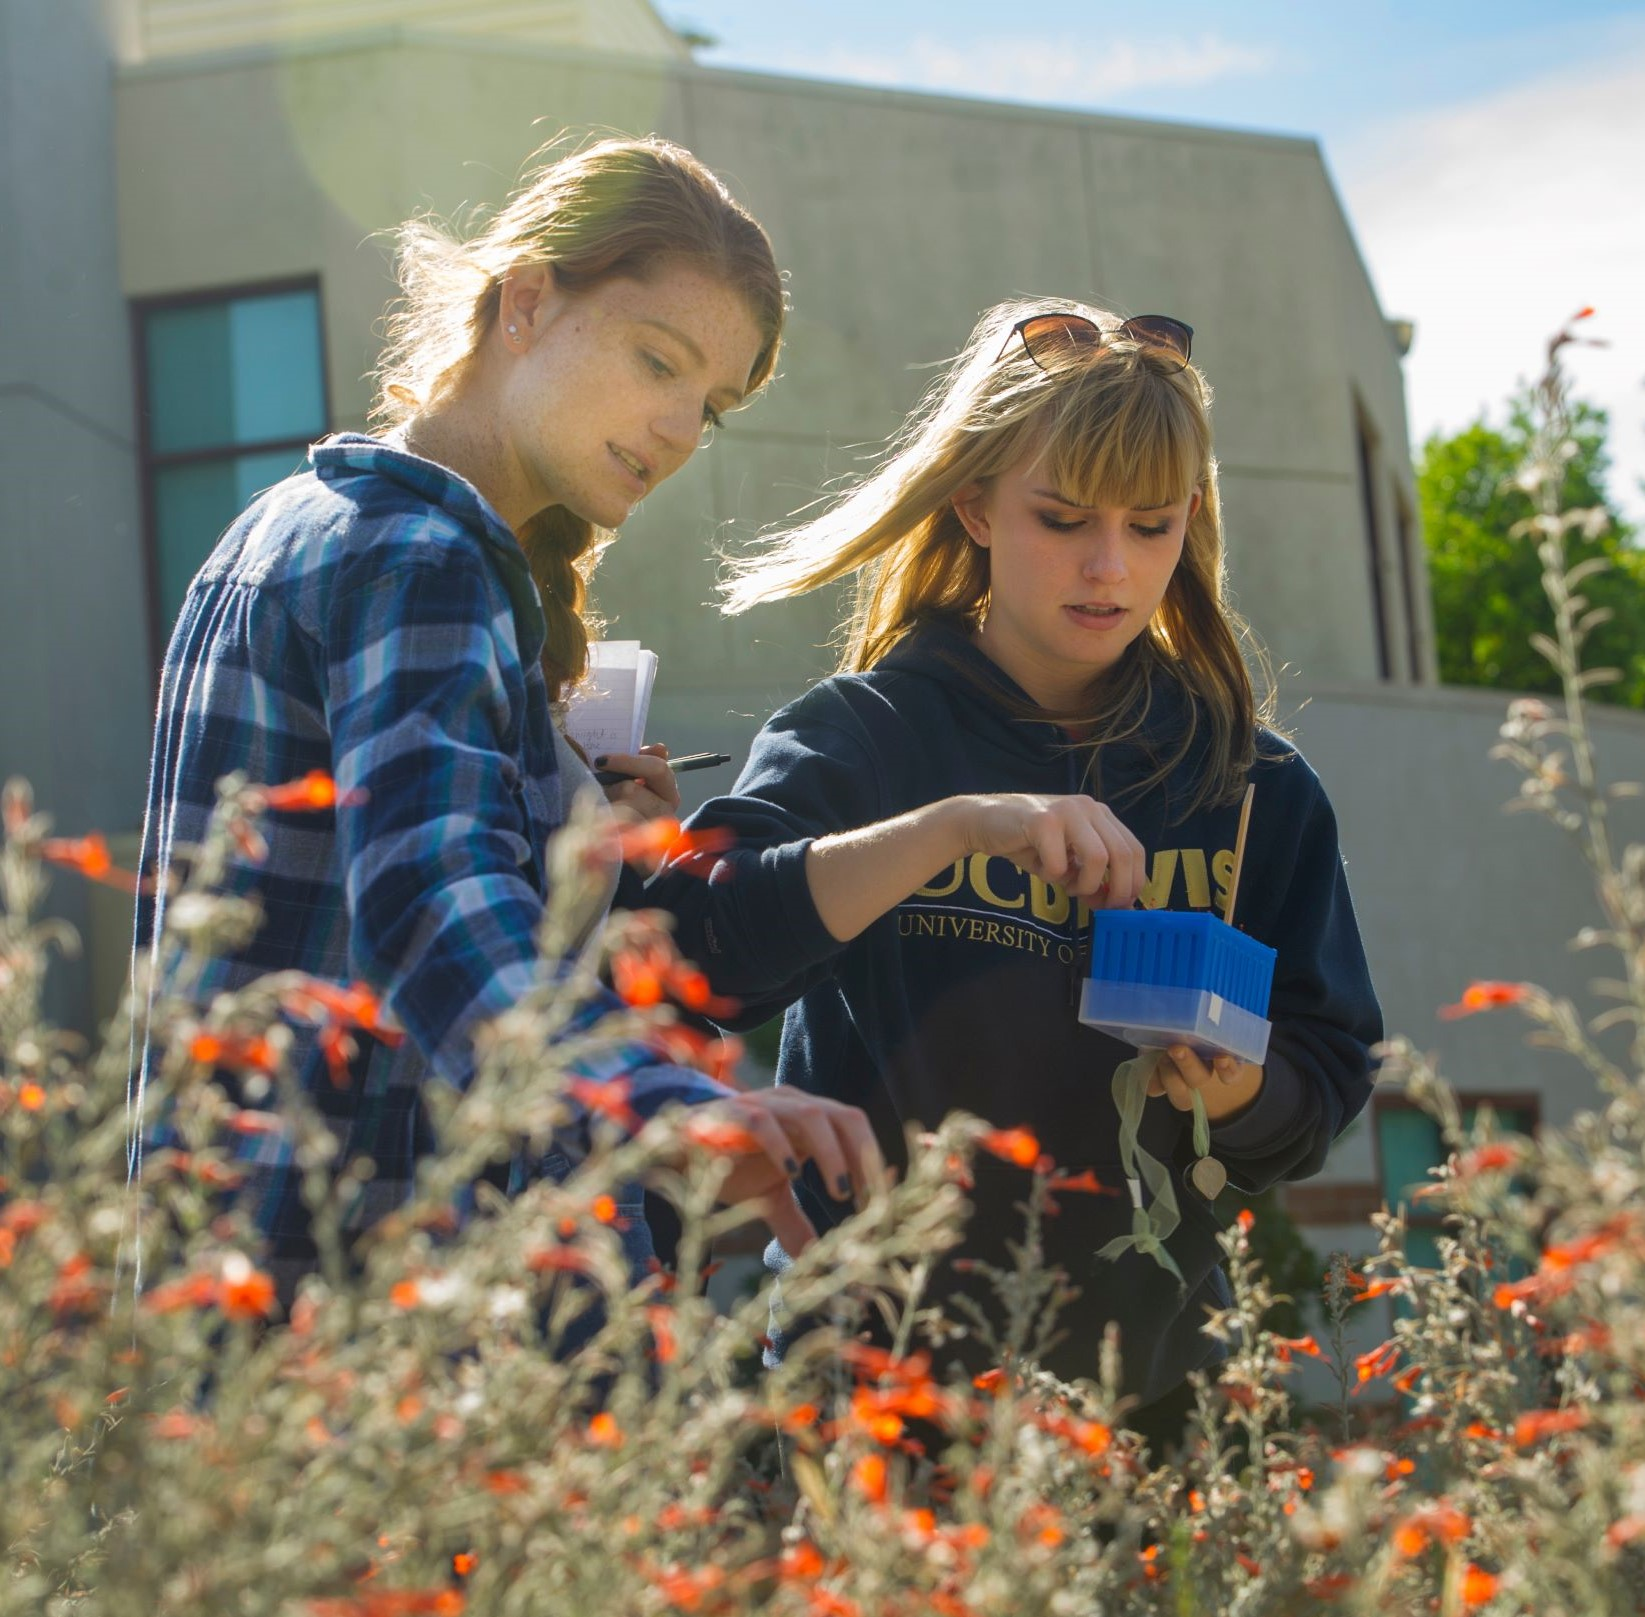 Two students examining fuchsta blossoms